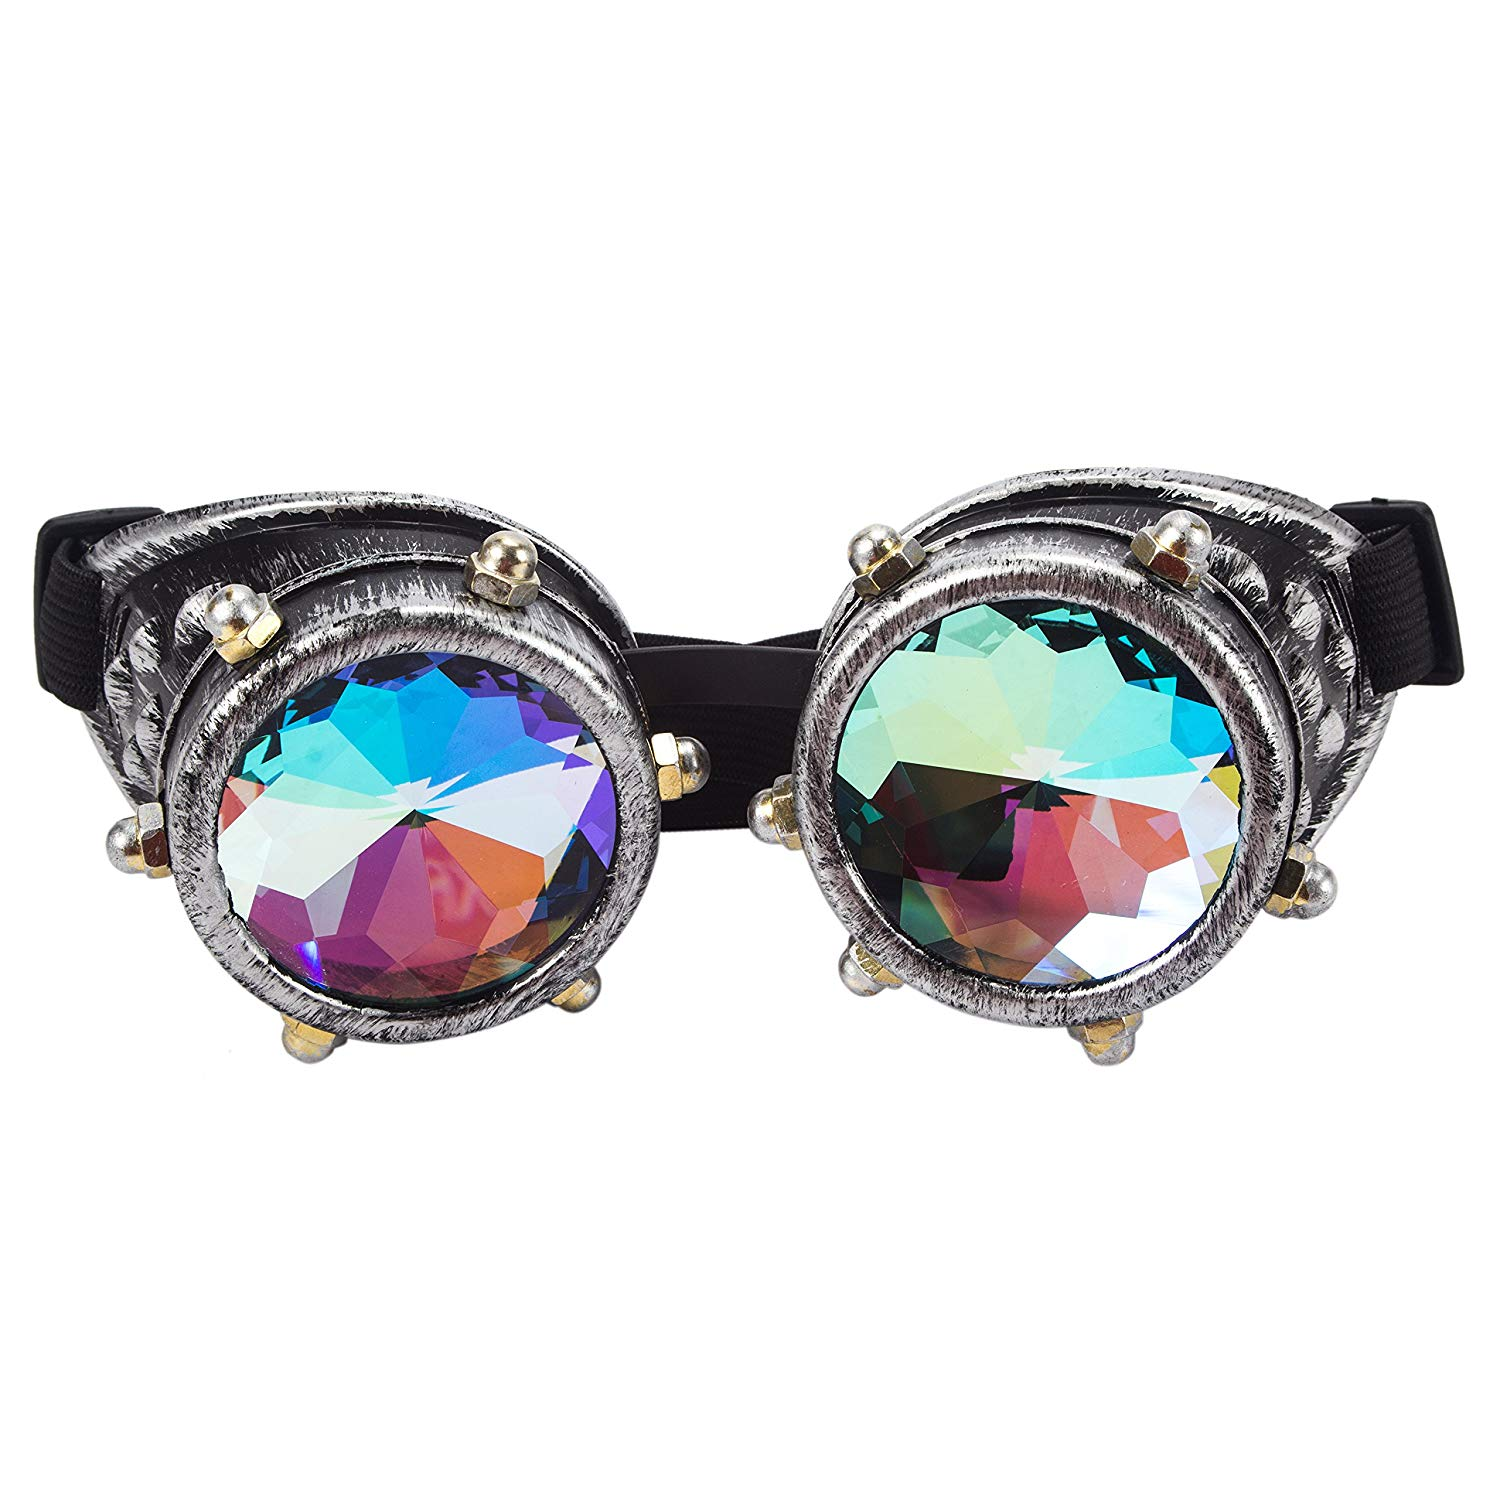 HIOFFER Kaleidoscope Goggles Glasses - Steampunk Rave Diffraction Glasses With Rainbow Crystal Prism